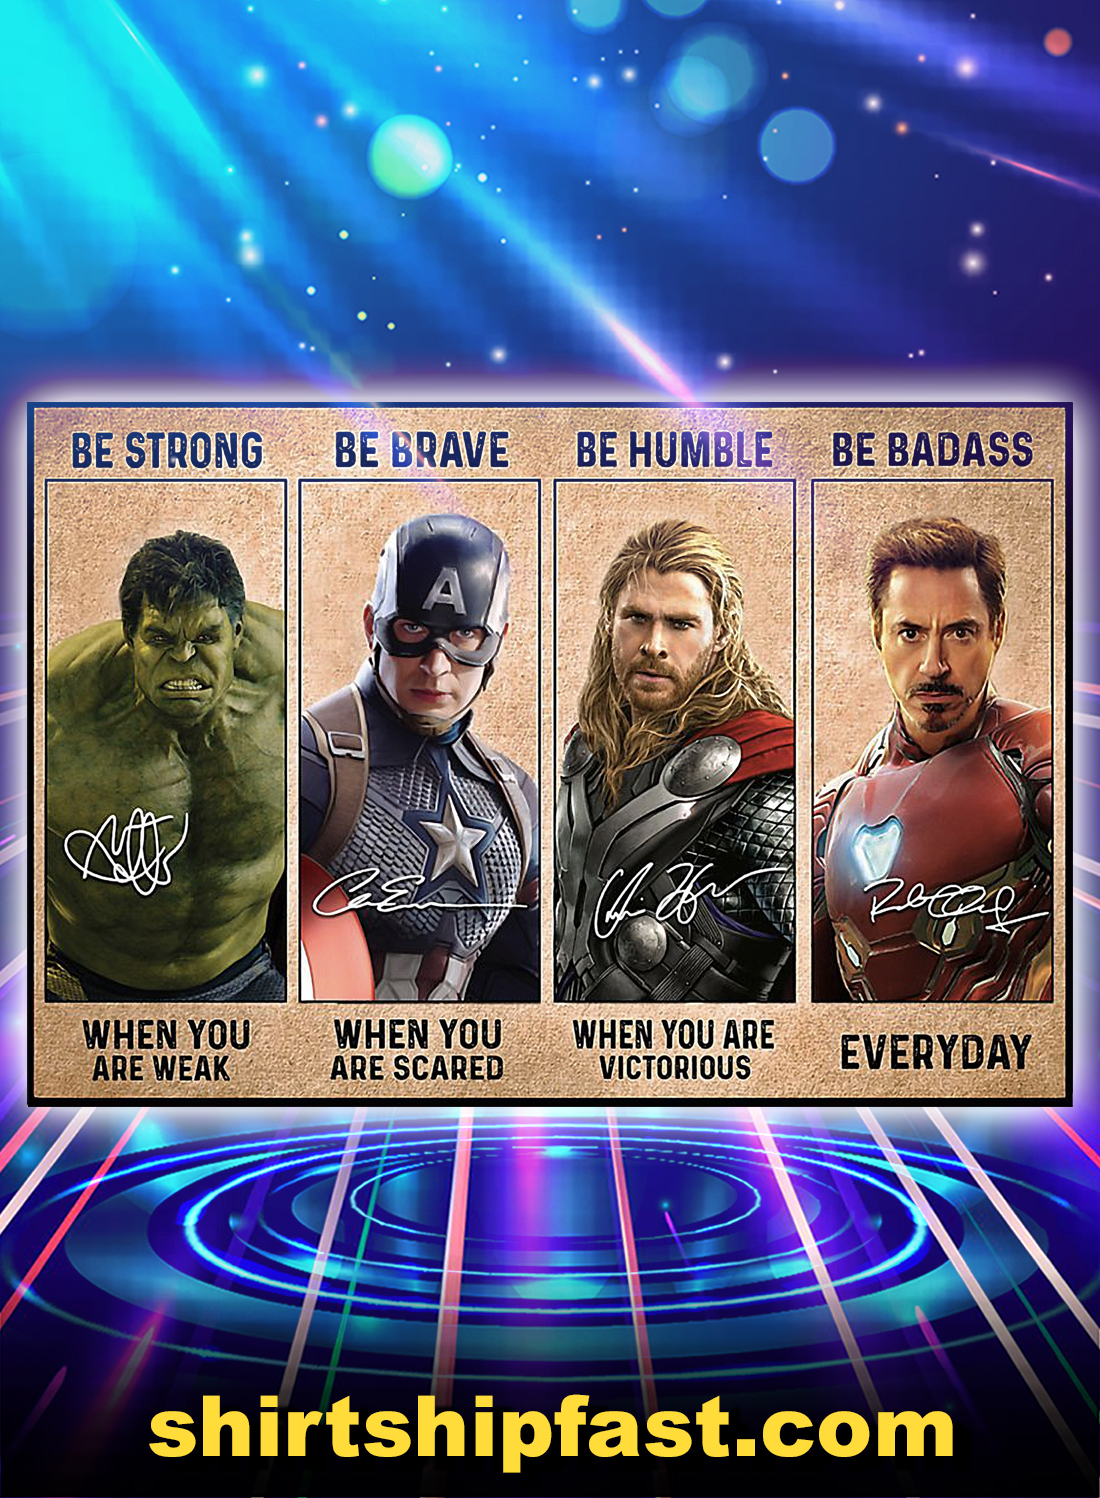 Be strong be brave be humble be badass avengers poster - A4